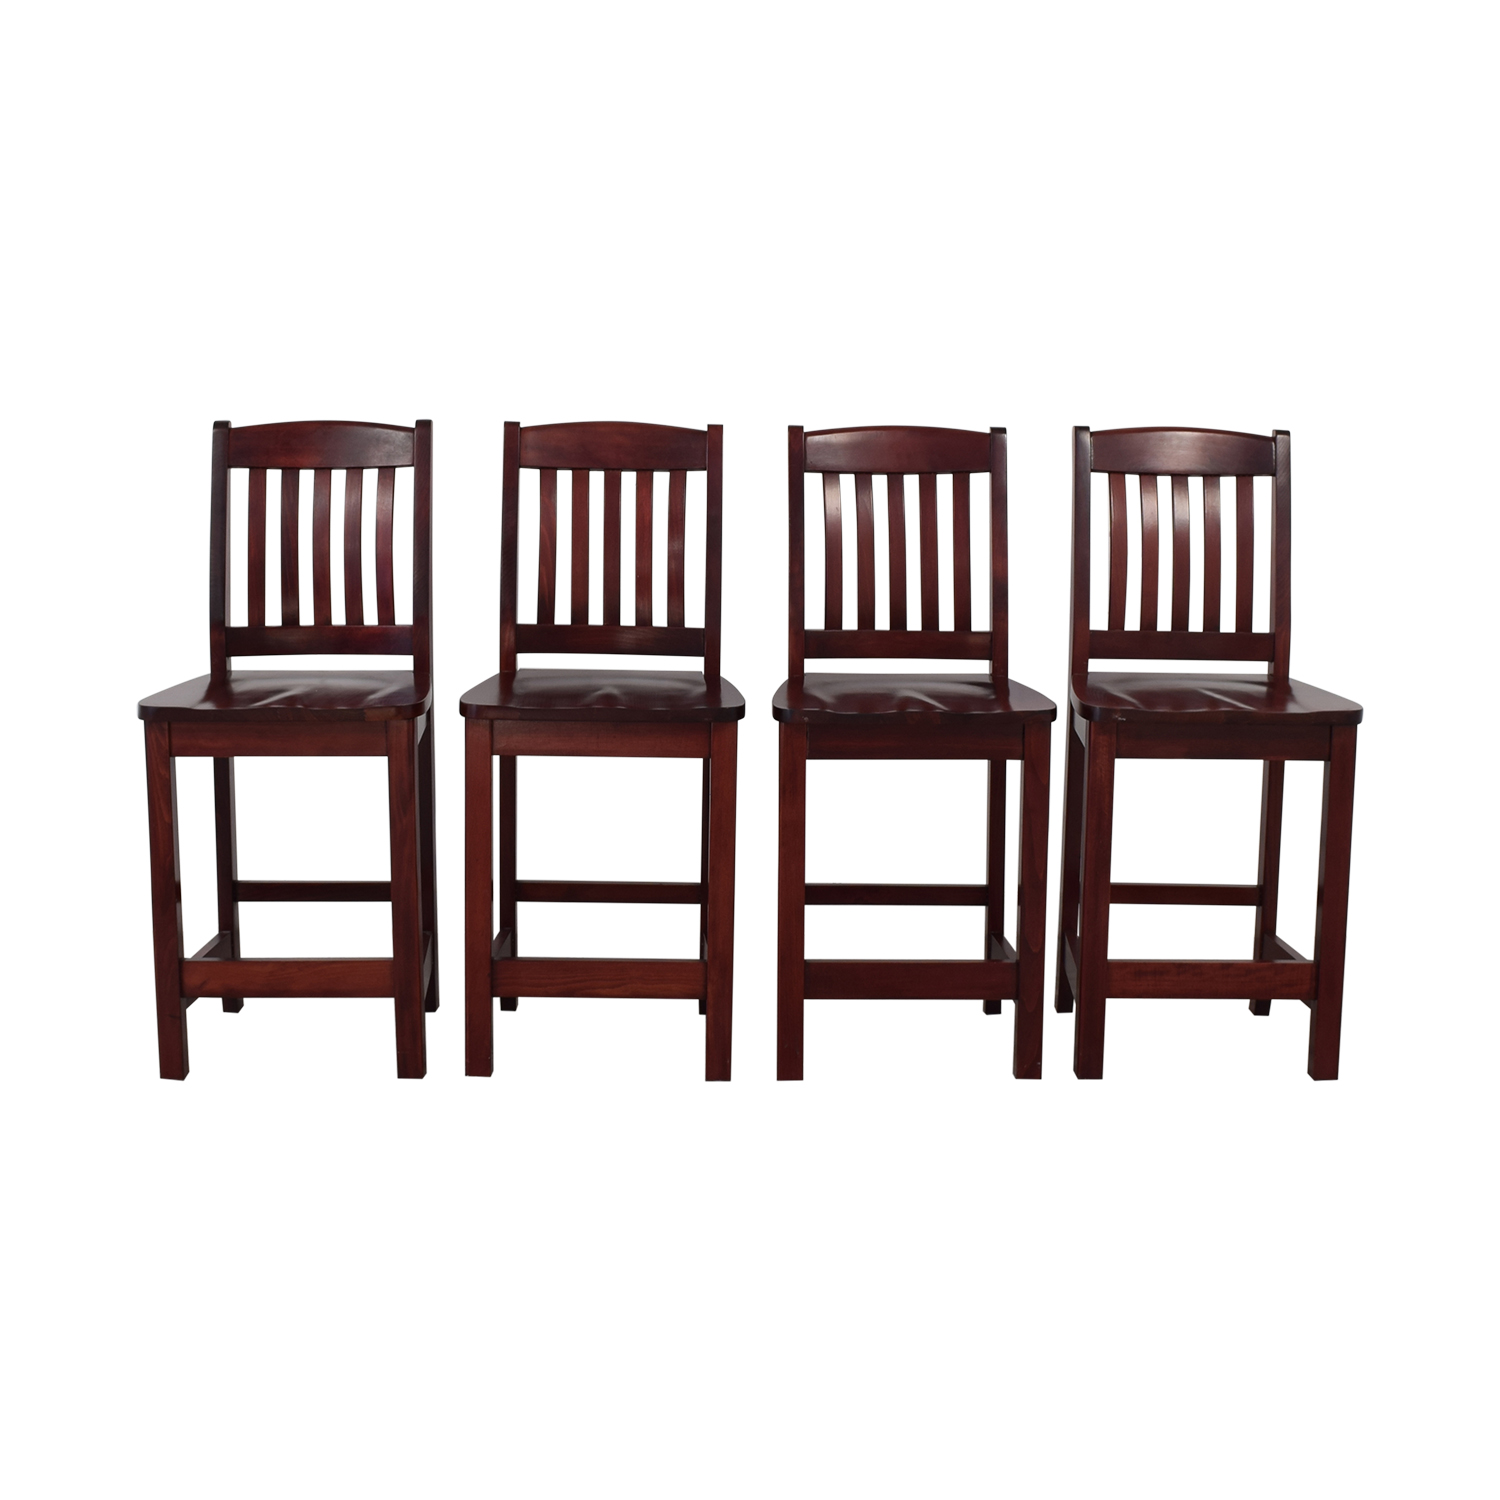 Holsag Bulldog Counter-Height Dining Chairs dimensions